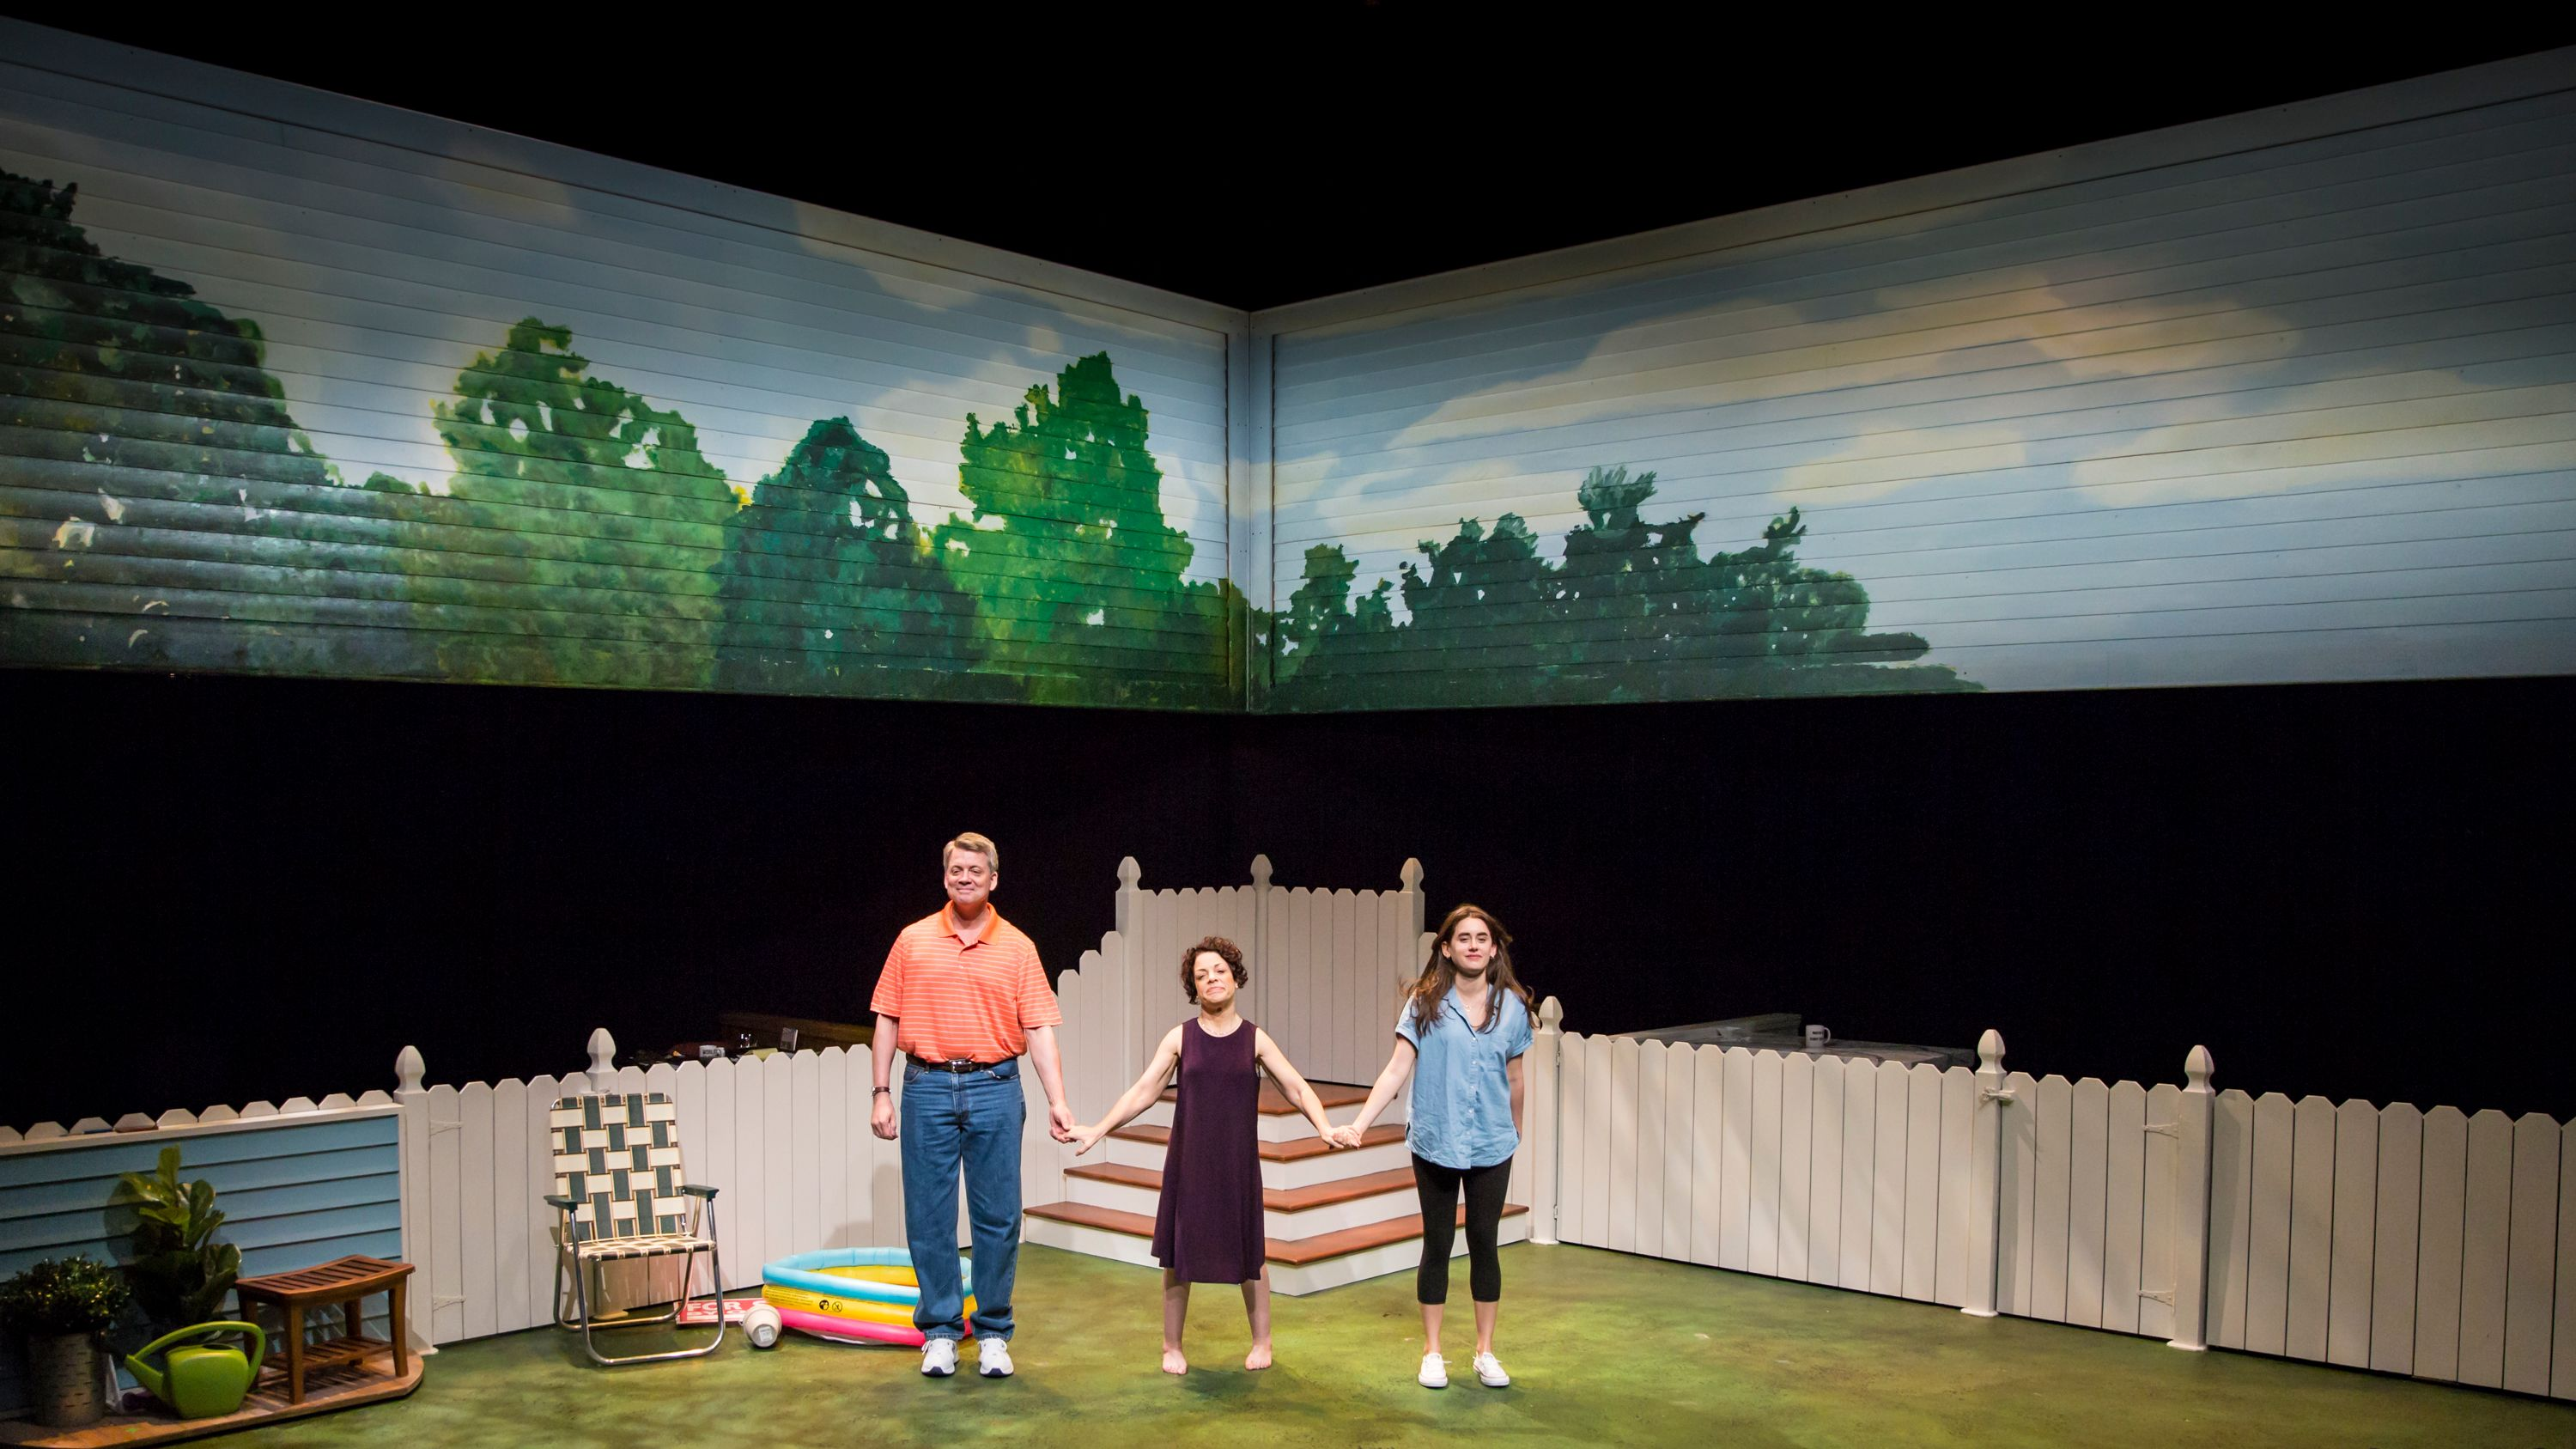 PUBLIC SERVANT-2019. (L to R) Chris Coffey, Christine Bruno & Anna Lentz. A group of actors are about to bow. They are standing on the a stage and in the background we see a backyard setting with a white picket fence and a blow up pool.